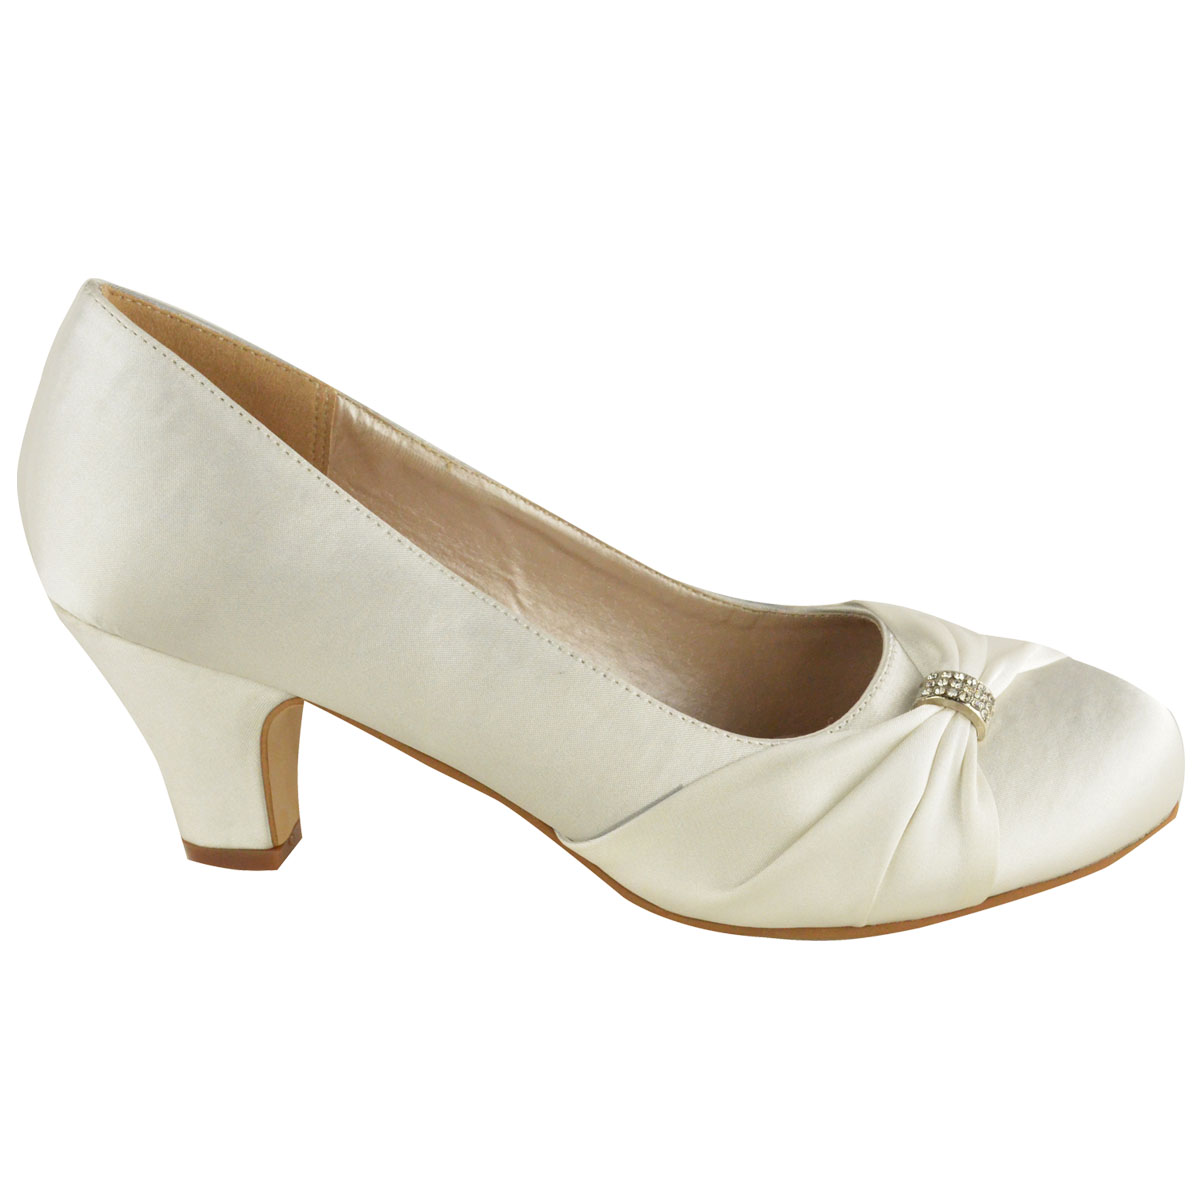 Womens-Wedding-Shoes-Ladies-Low-Mid-Heels-Bridal-Bridesmaid-Party-Sandals-Courts Indexbild 11